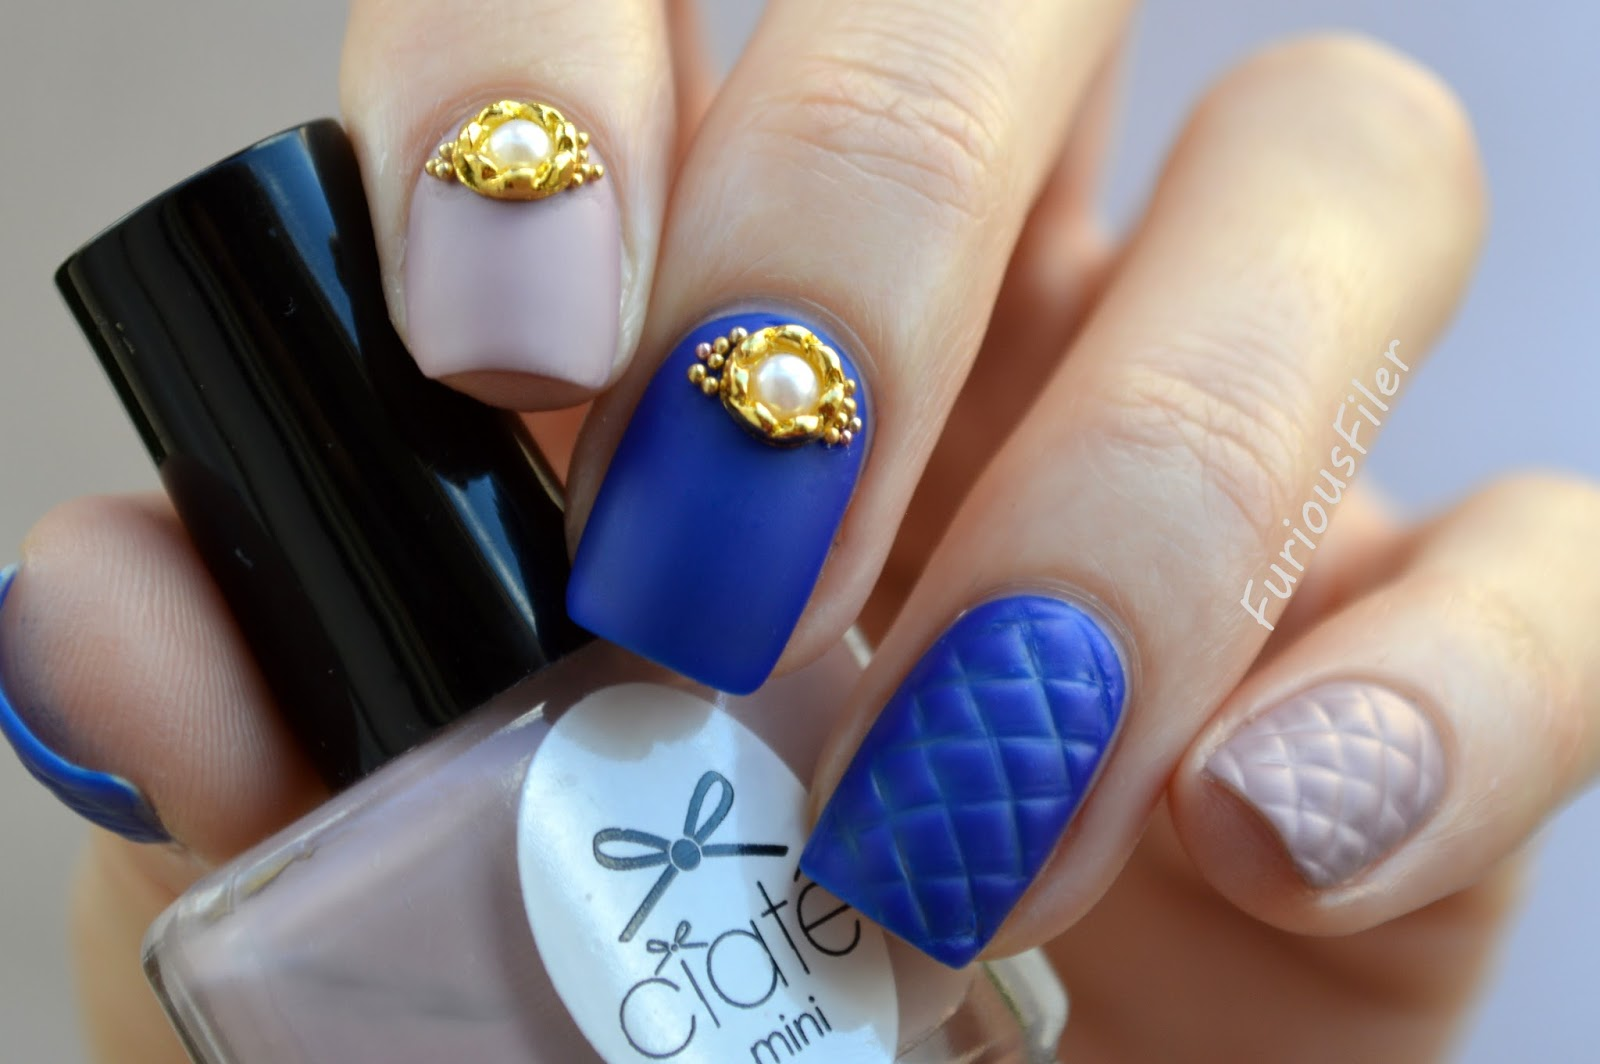 Quilt Nails A Step Towards Easy 3d Nail Art